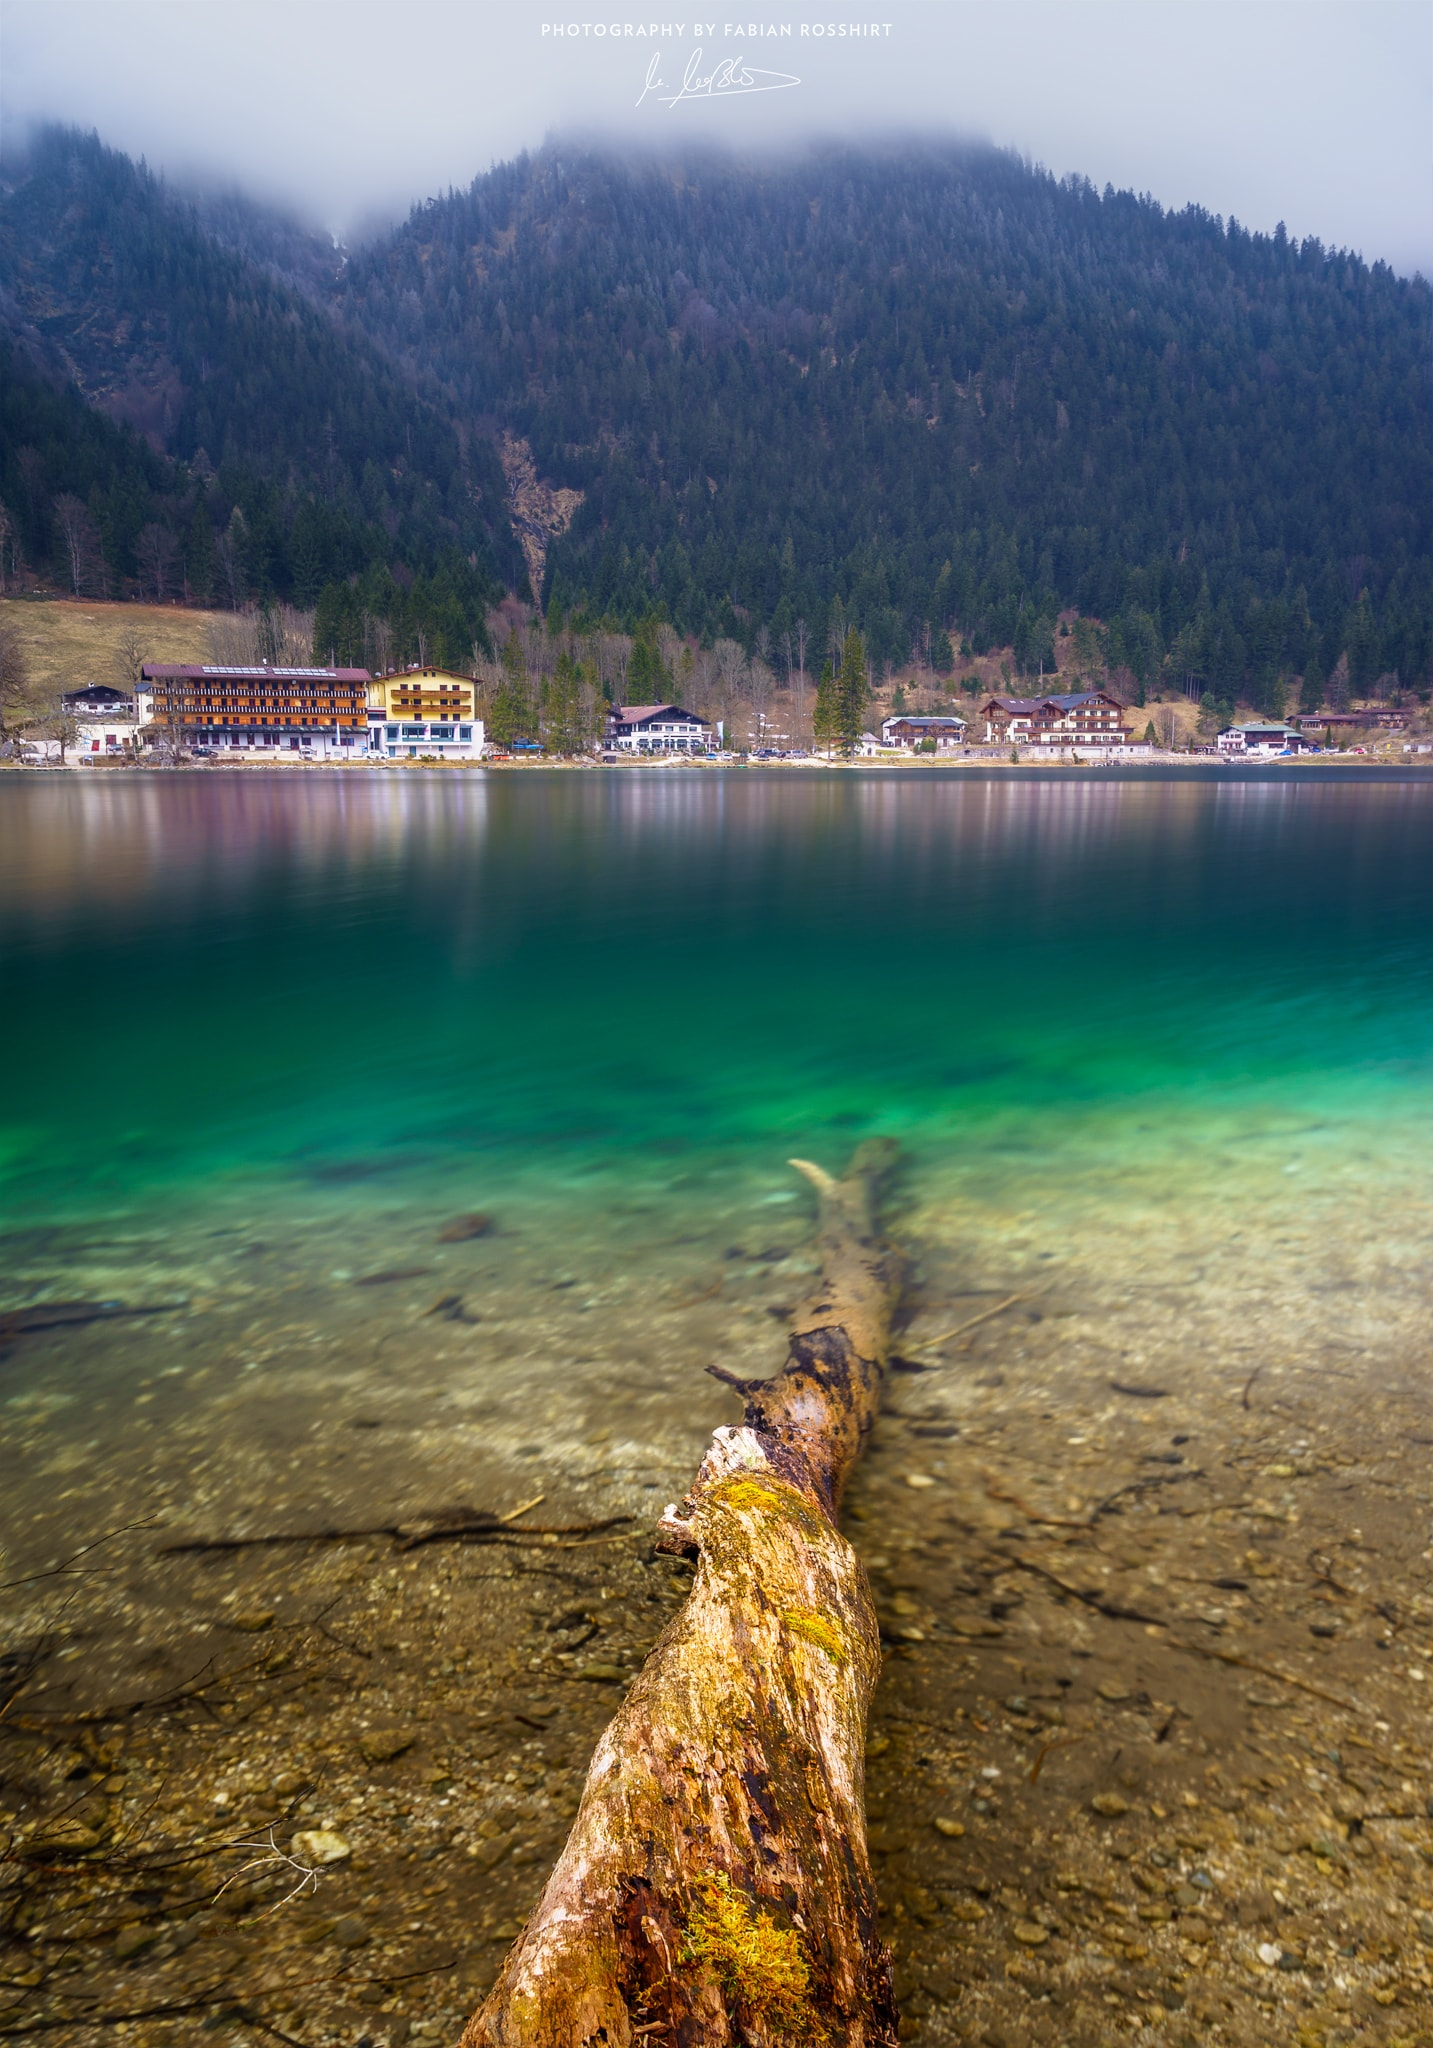 Hintersee, See, Berge, Gebirge, Klar, Baumstamm, Holz, Lake, Transparent, Clear Water, TREE TRUNK (Berchtesgaden Wallpaper HD Bilder Hintergrundbild Background)